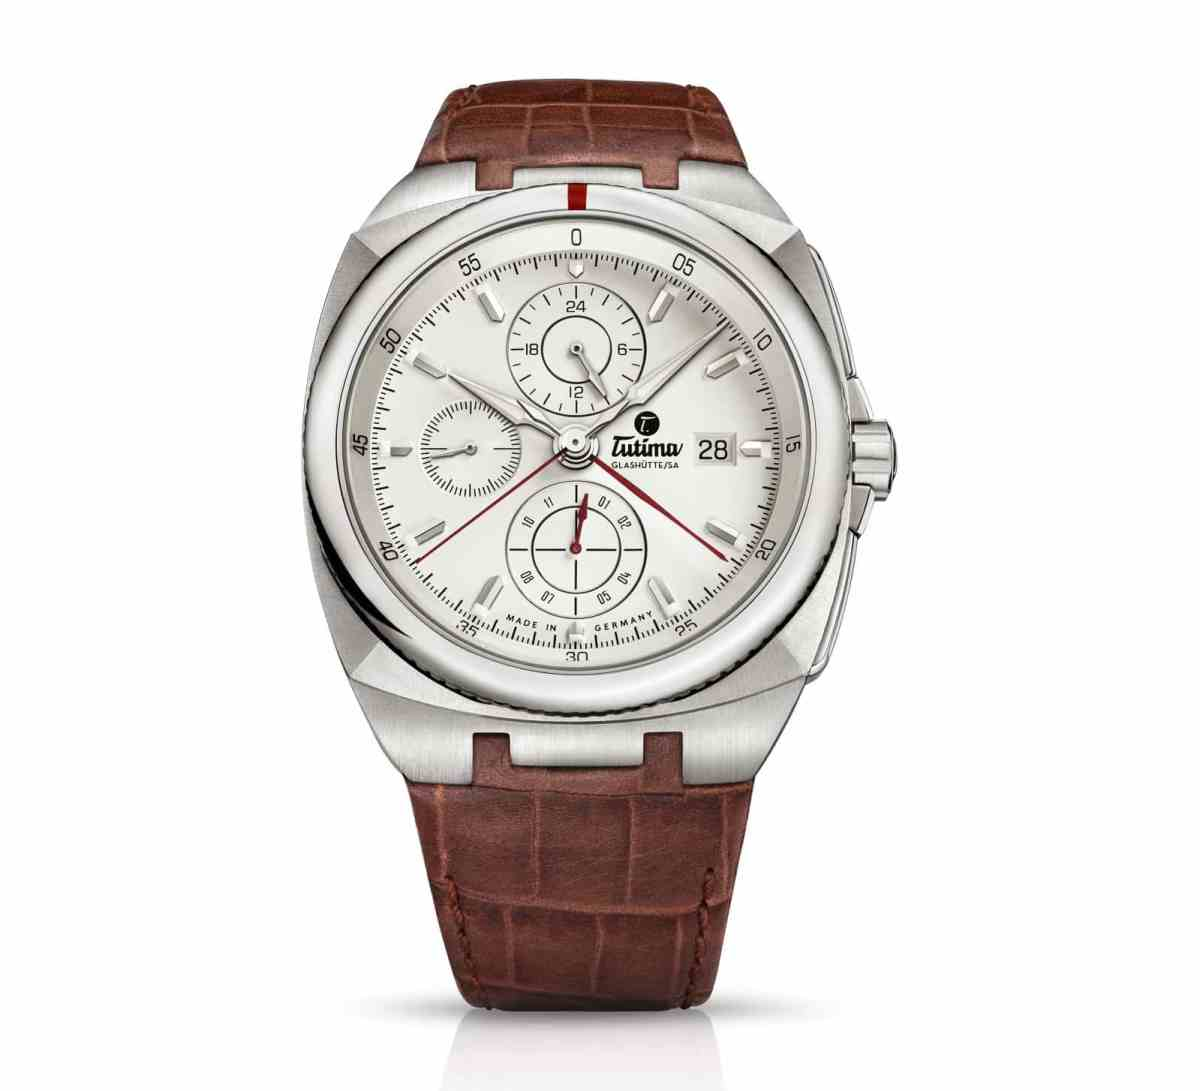 Highlight of the new collection: SAXON ONE chronograph, with alligator leather strap, ref-no 6420-04.